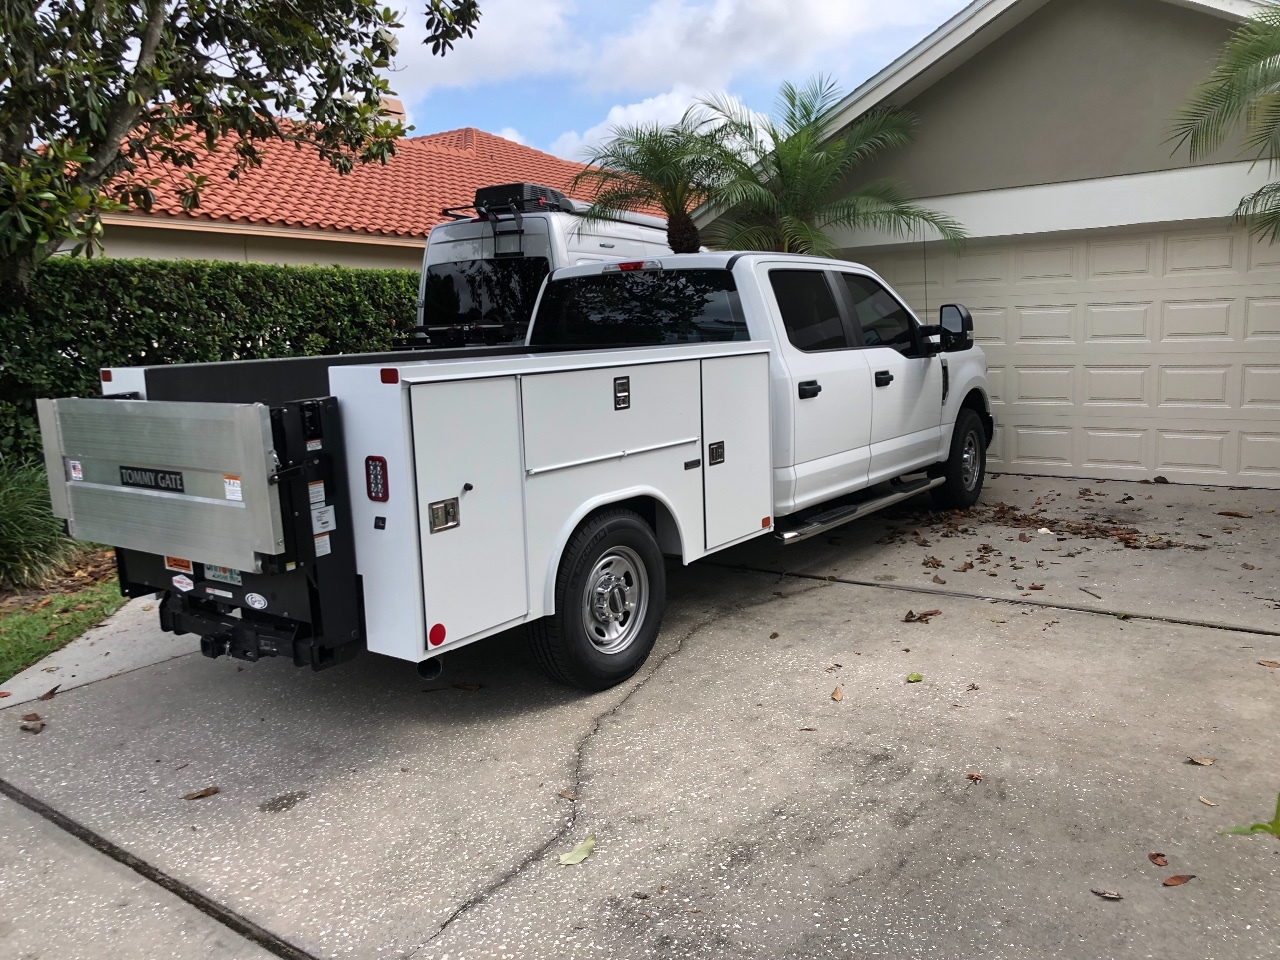 F250 Utility Truck - Service Trucks For Sale on 7.3l fuel filter, ford fuel filter, flex fuel filter, ram 2500 fuel filter, motorcraft 6.0 fuel filter, 6.0 diesel fuel filter, wrangler fuel filter, 2013 ram 3500 fuel filter, yukon fuel filter, 2006 f350 fuel filter, model a fuel filter, suburban fuel filter, e350 fuel filter, ram 1500 fuel filter, 6.7 powerstroke fuel filter, m300 fuel filter, inline fuel filter, silverado fuel filter, durango fuel filter, f250 hood,